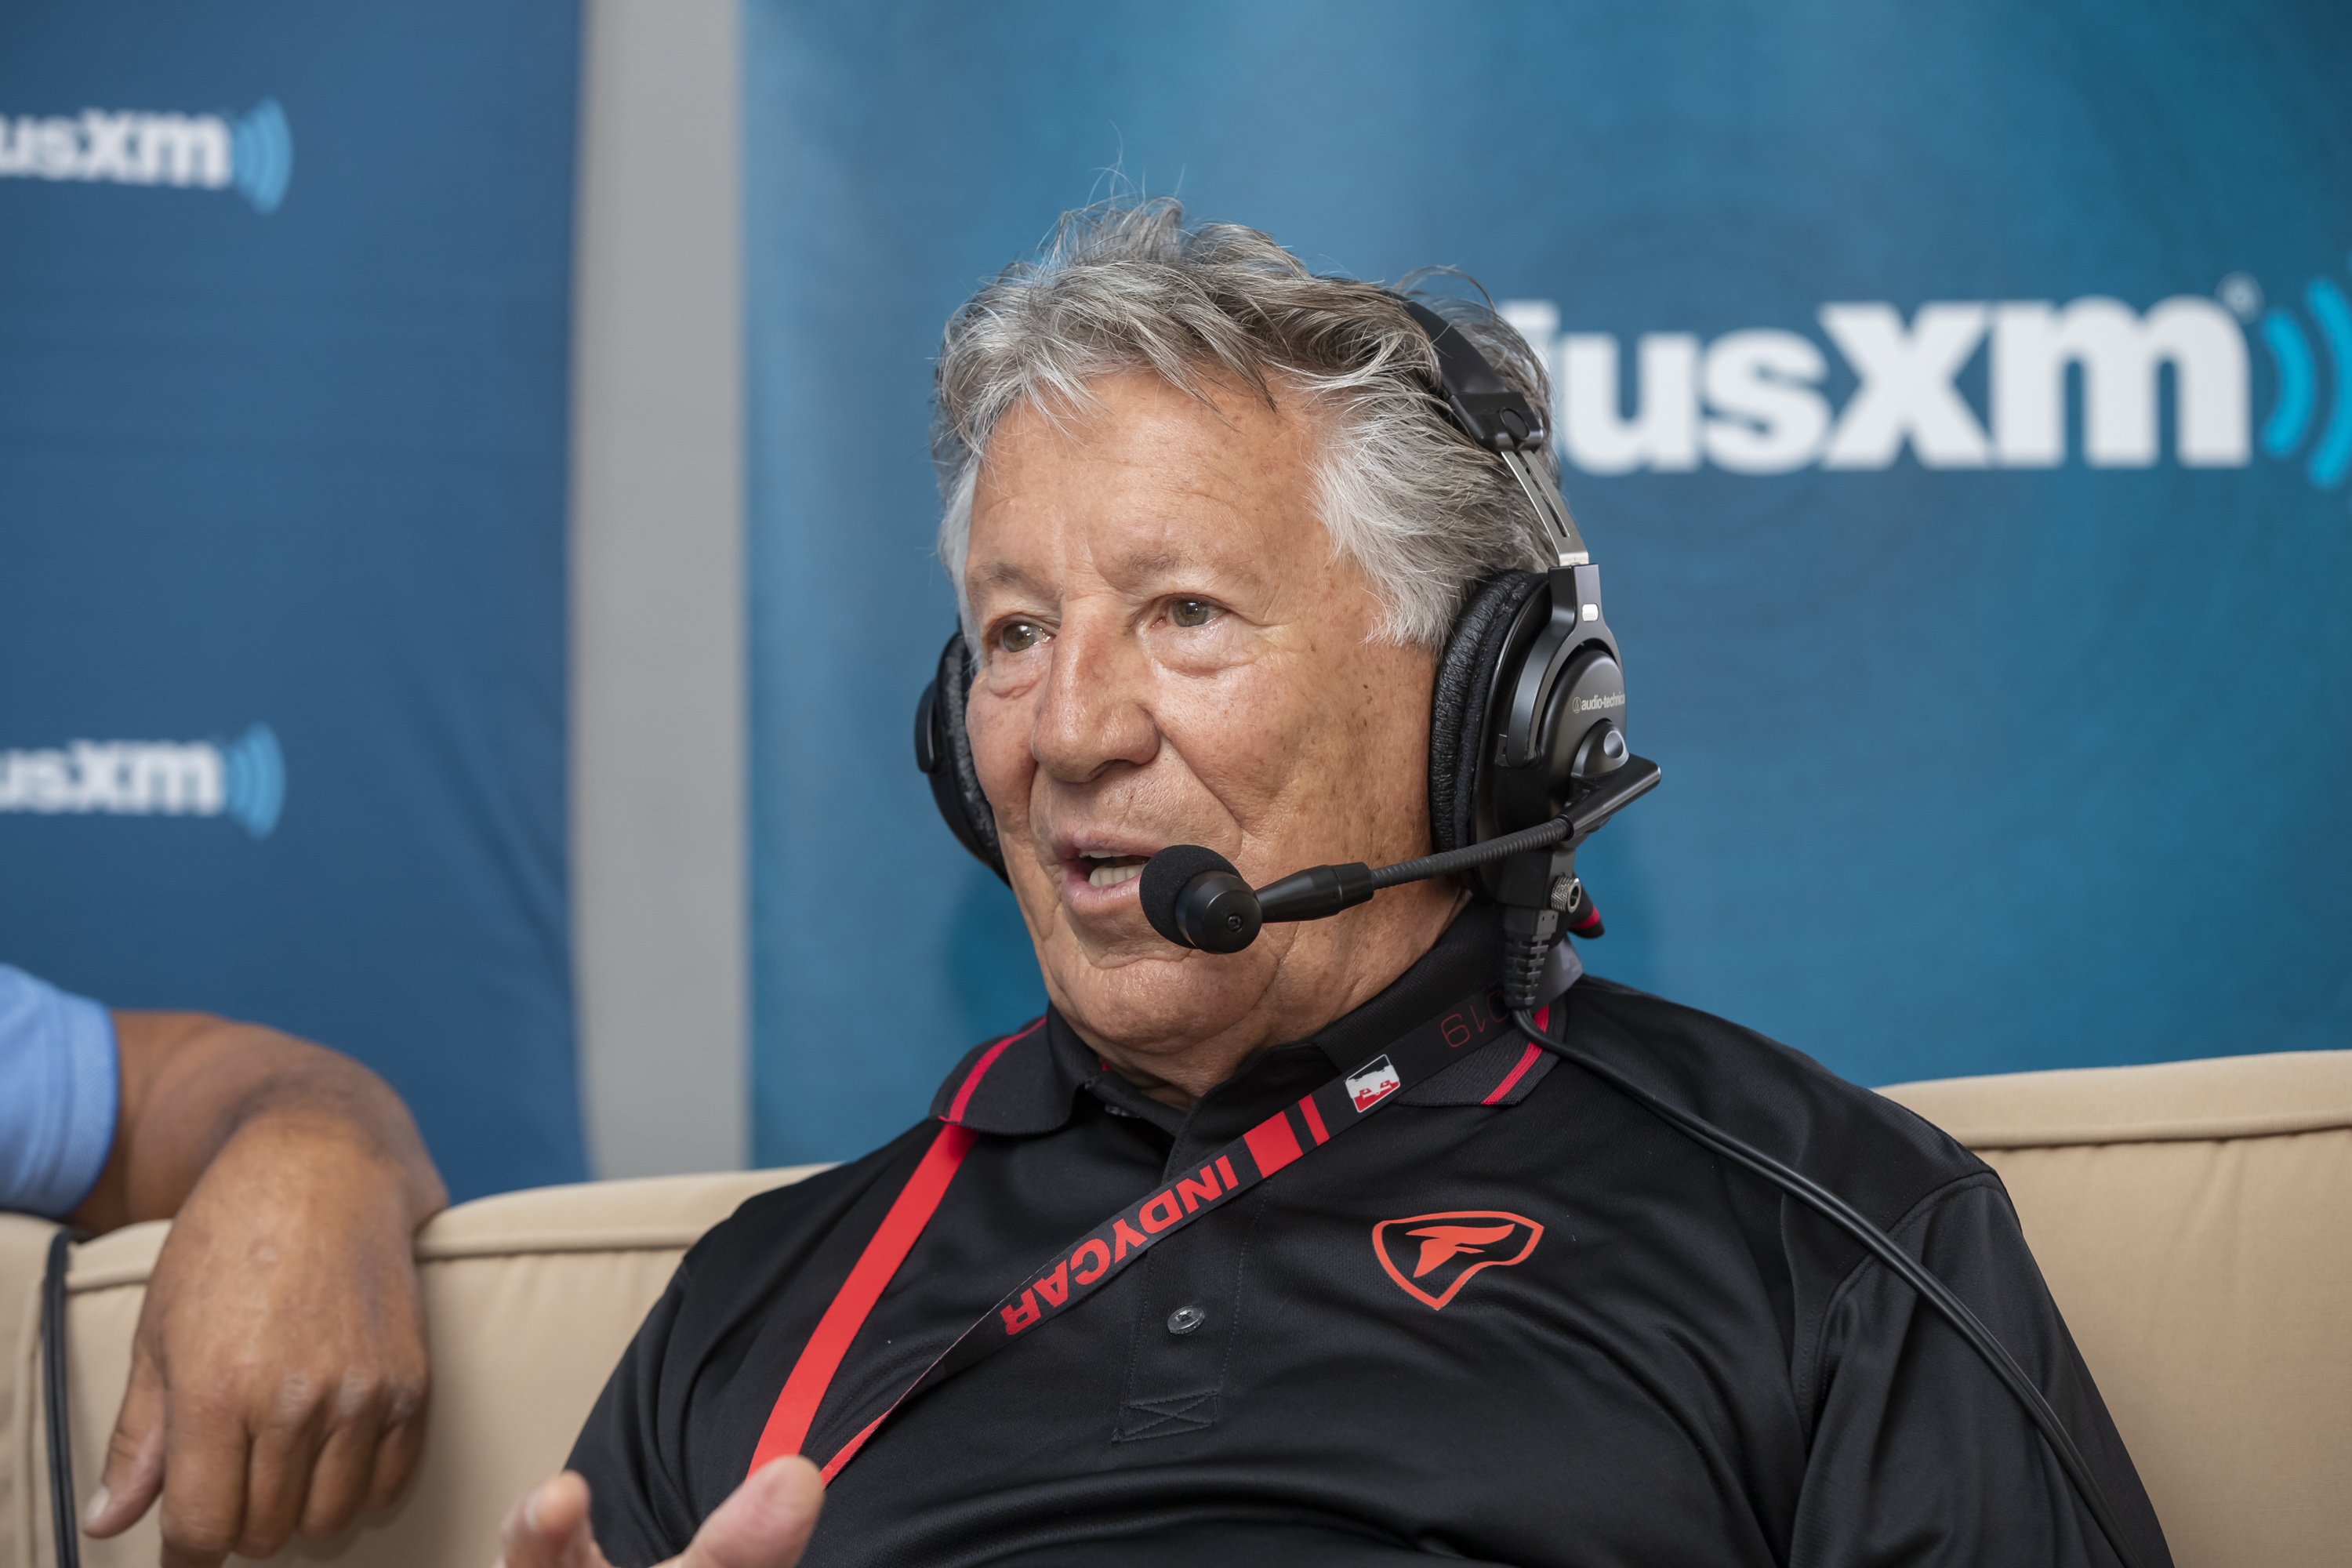 Mario Andretti and Tom Brady: 1 GOAT Rooting for Another